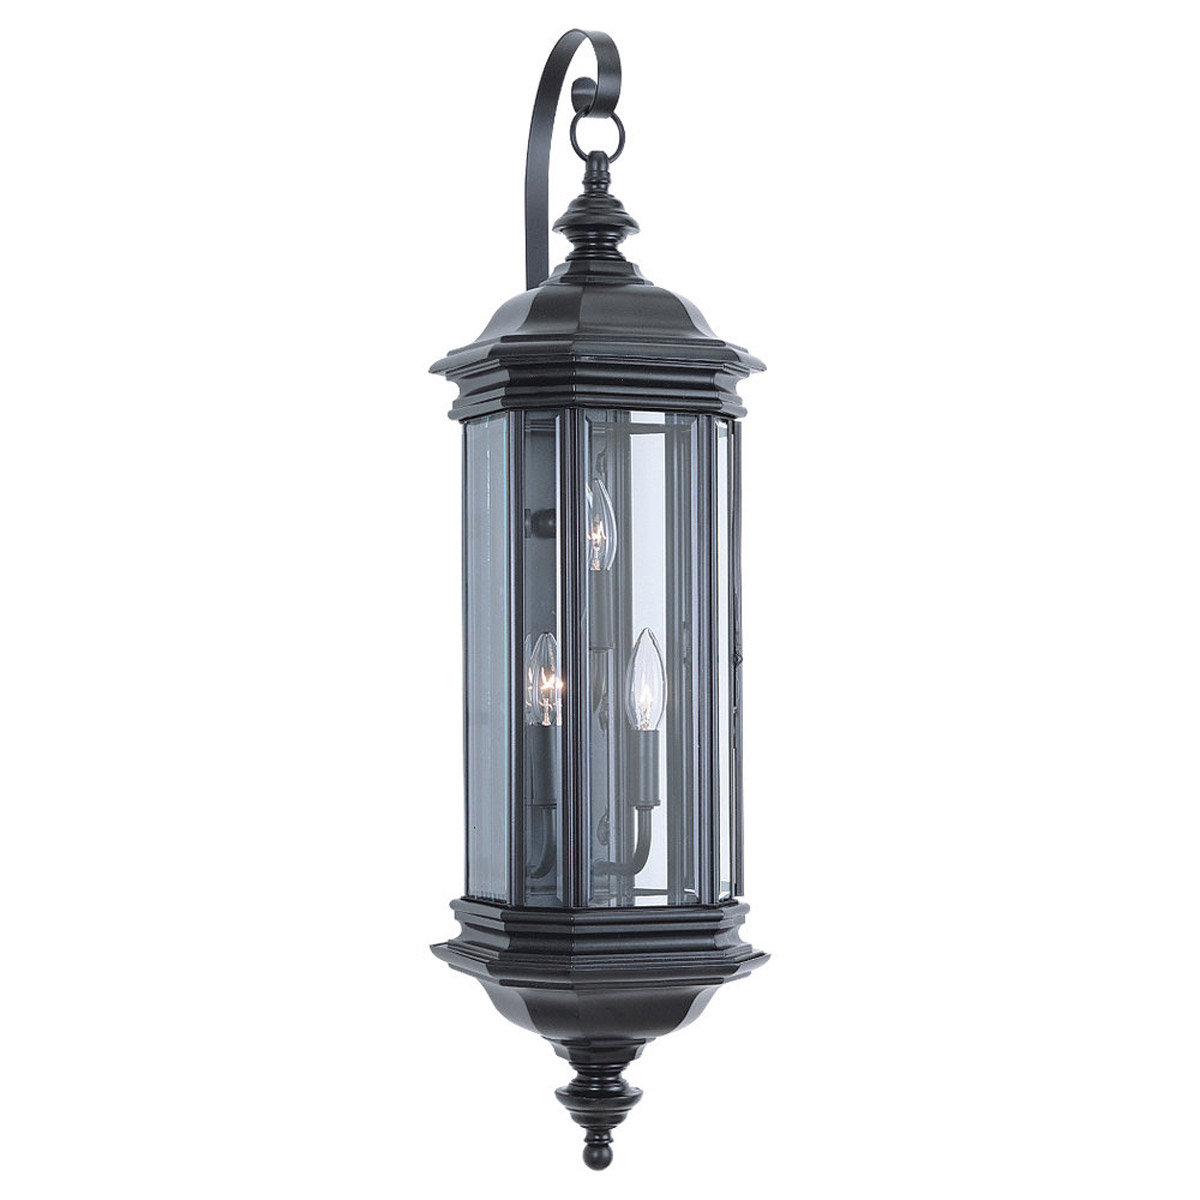 Sea Gull Lighting Hill Gate 3 Light Outdoor Wall Lantern in Black 8842-12 photo